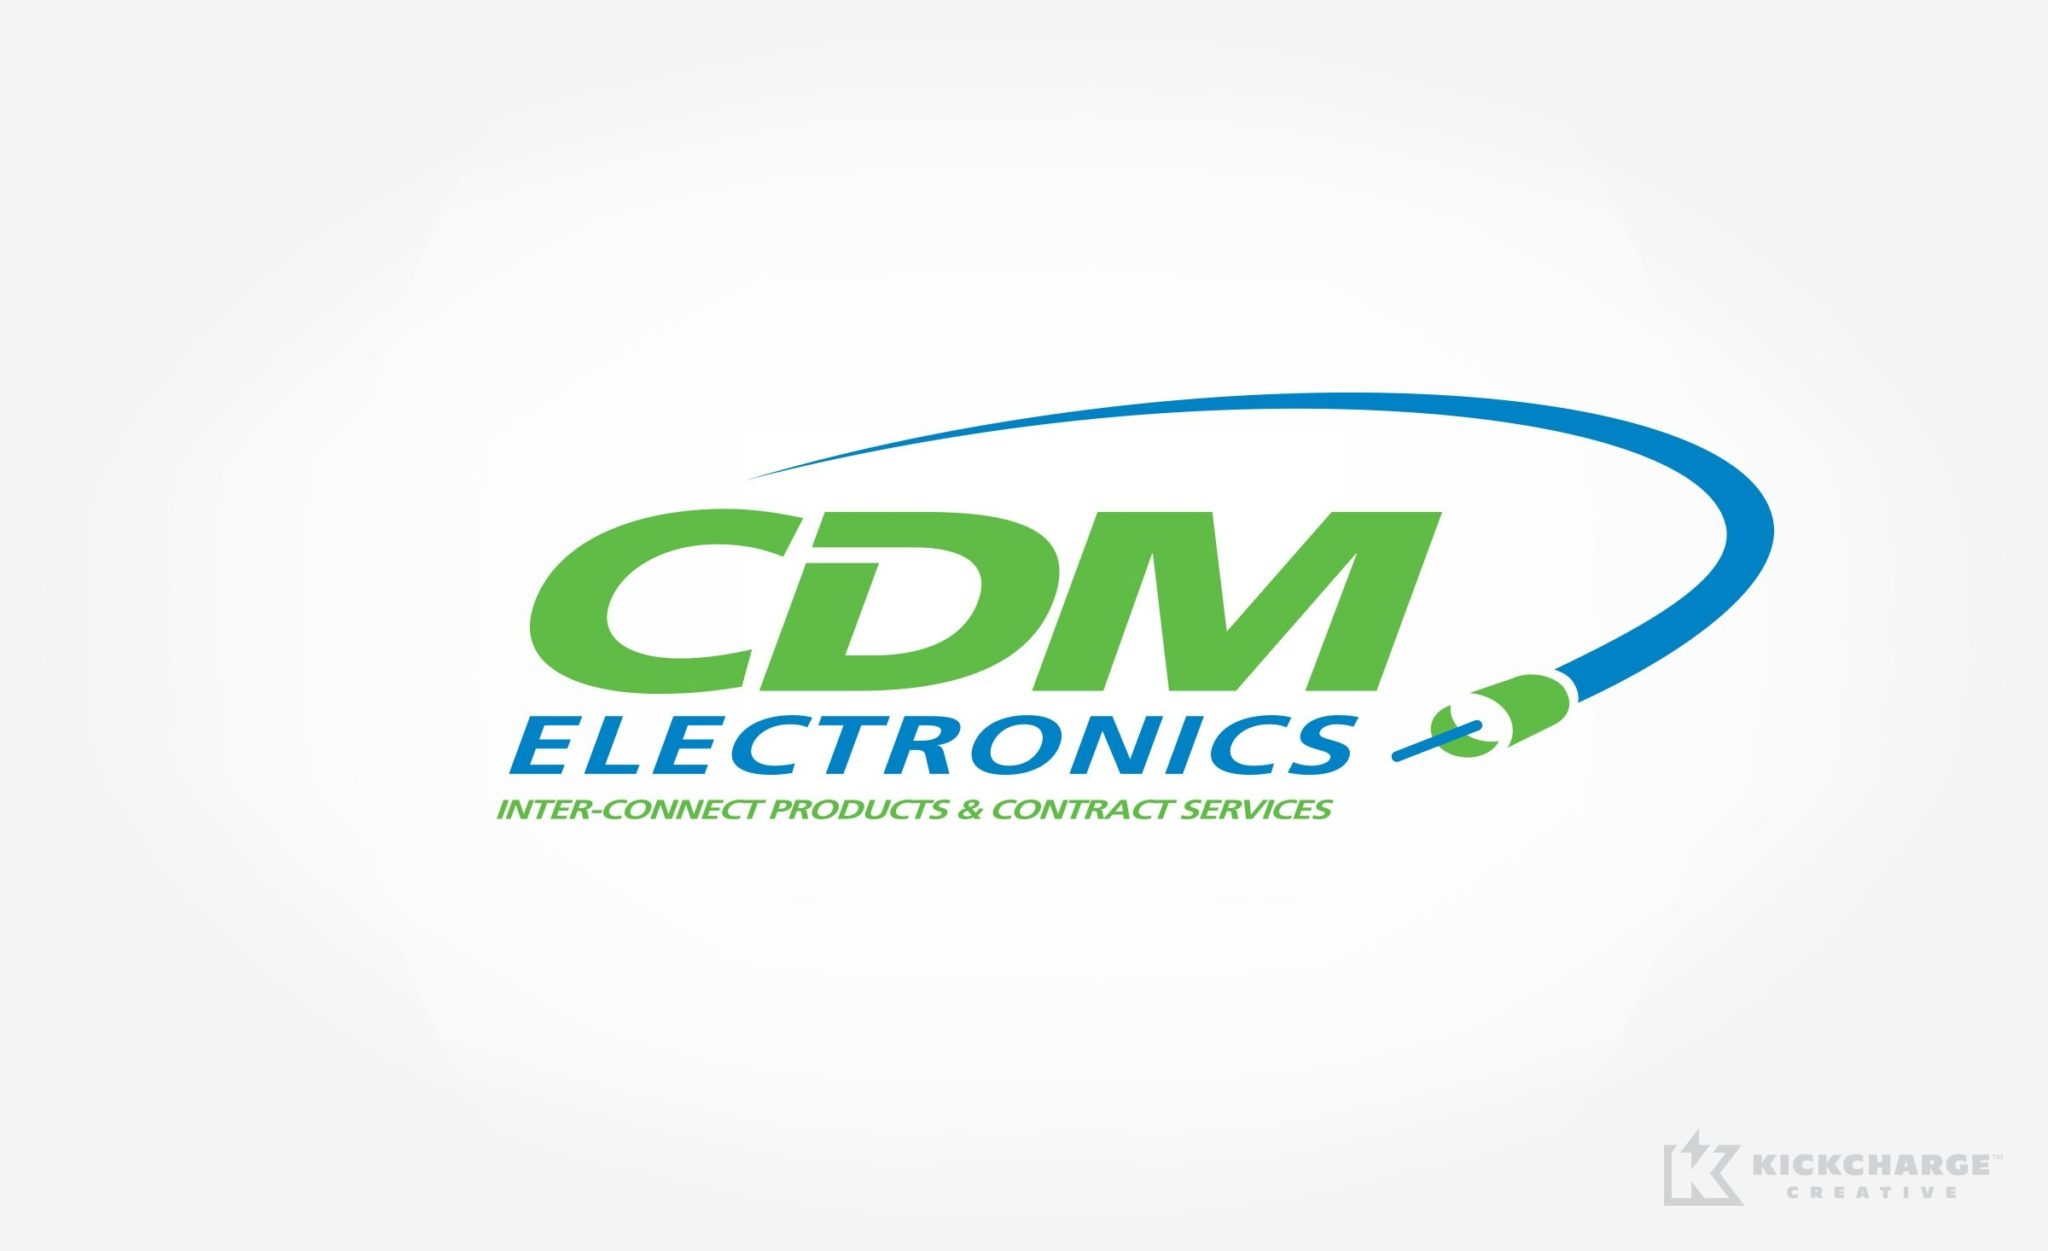 Logo design for CDM Electronics.